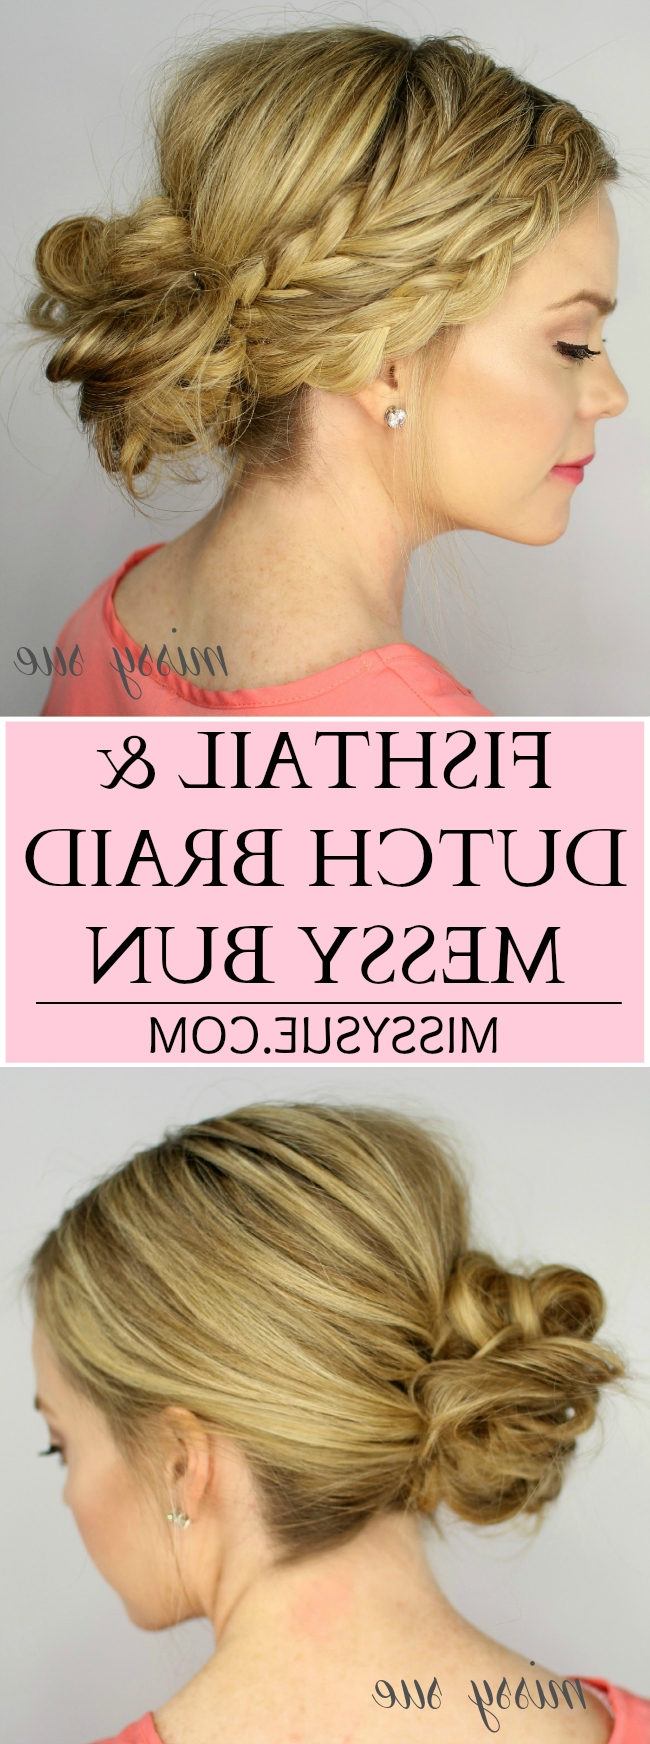 Fishtail And Dutch Braid Messy Bun Throughout Favorite Messy Ponytail Hairstyles With A Dutch Braid (View 9 of 20)